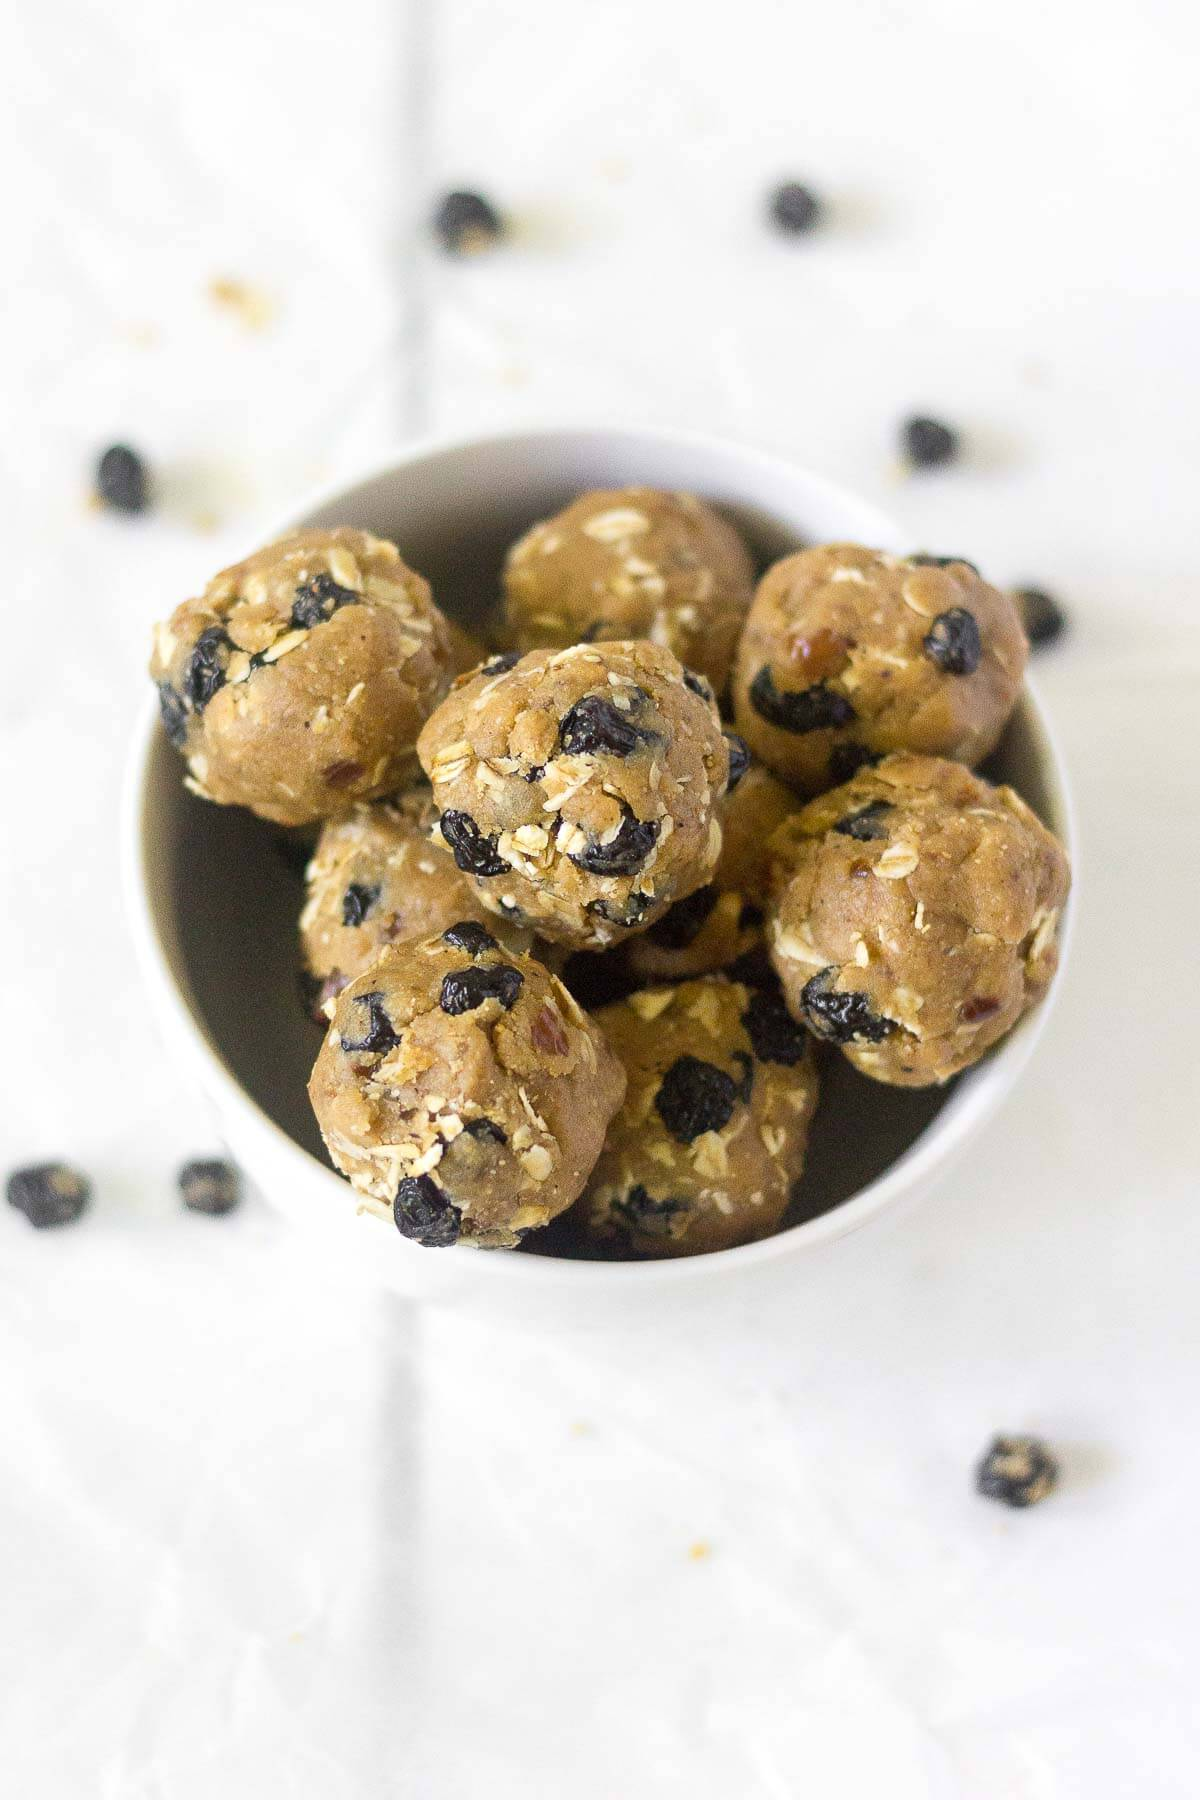 These blueberry muffin energy bites are a delicious and healthy bite-sized snack! Made with oats, cinnamon and almond butter, these snack bites are healthy and give you all the energy you need.